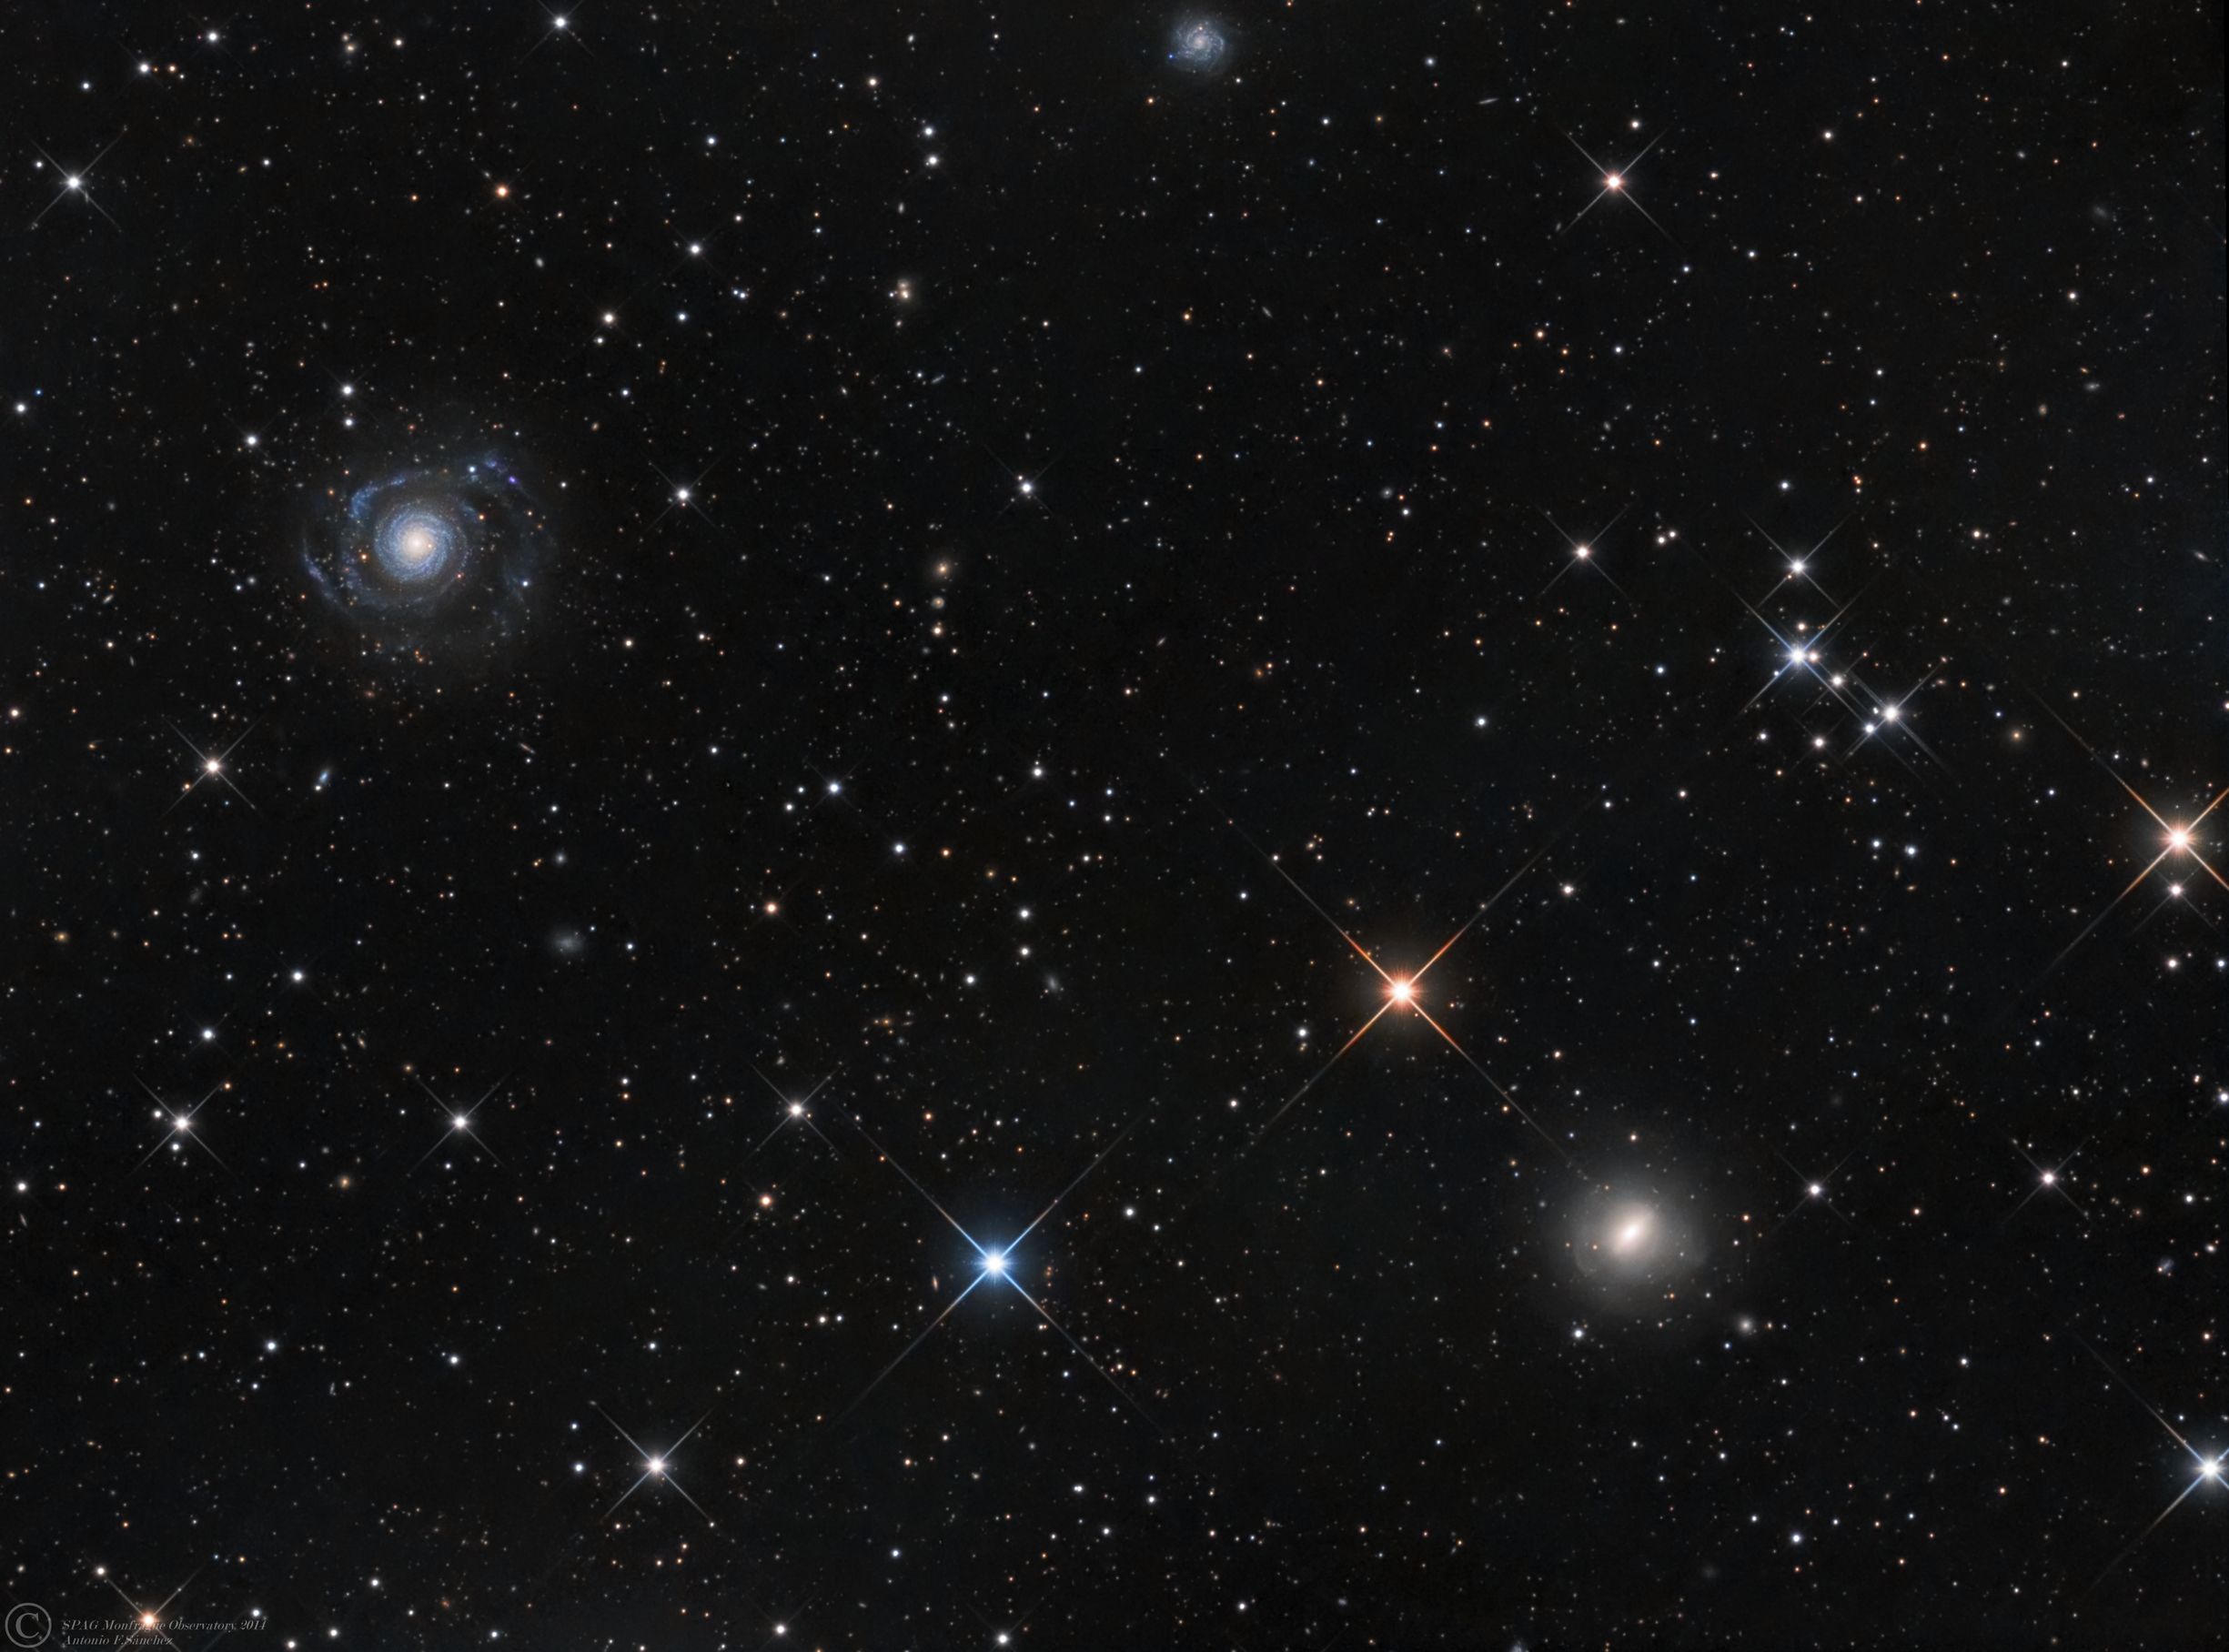 NGC 3642-3610 LRGB (Ursa Major).jpg - NGC 3642,NGC 3610, PGC 34666 ( Ursa Major) * February- March 2014 * ASA N12 astrograph ( f/3.6, 1078mm ) * ASA DDM85 mount * FLI Ml 8300 ar-25ºC * Optec LRGB filter set * L: 540m R: 190m G 160m B: 190m * Unguided *NGC 3642, a galaxy disturbed by a past interaction, while classified as type SBc it displays a warped outer ring undergoing star formation at 1.5 times the rate on the inner area. Distance is 79 Mly.Star formation in the warped outer parts might be linked to the fact that NGC 3642 is located in a rich environment, where its close neighbors show clear signs of merging. Our suggestion is that NGC 3642 has captured recently a low-mass, gas-rich dwarf, and star formation was triggered in this infalling external gas that produced also a pronounced warp in the gaseous disk.Verdes-Montenegro, L.; Bosma, A.; Athanassoula, E.NGC 3610 is a member of the NGC 3642 Group (LGG 234), with ?ve cataloged members. The NGC 3642 Group itself is a subgroup of the rich (N = 170) Group 94 of Geller.The optical peculiarities include two or three shells,a central X-structure, plumes, and extraordinarily boxy outer isophotes (Forbes & Thomson 1992; Whitmore et al(1997)The idea of this image was to show NGC 3610 not just as an elliptical galaxy, but show the shells all aorund it...¡¡Studies in this galaxy, suggest the presence of a small stellar edge-on disk imbedded into its spheroid.The disk modelling , allows to derive strong constraints on the inclination of the galaxy.Residuals image obtained form ths substraction of disk-model reveals the presence of an additional weak outer disk and a shell. Latter features suggest an interaction process in the more recent history of this galaxy. http://www.spacetelescope.org/images/opo9734r/http://www.cv.nrao.edu/~jhibbard/HIinEs/2003AJv125p667.pdfhttp://articles.adsabs.harvard.edu//full/1990A%26A...235...49S/0000049.000.html